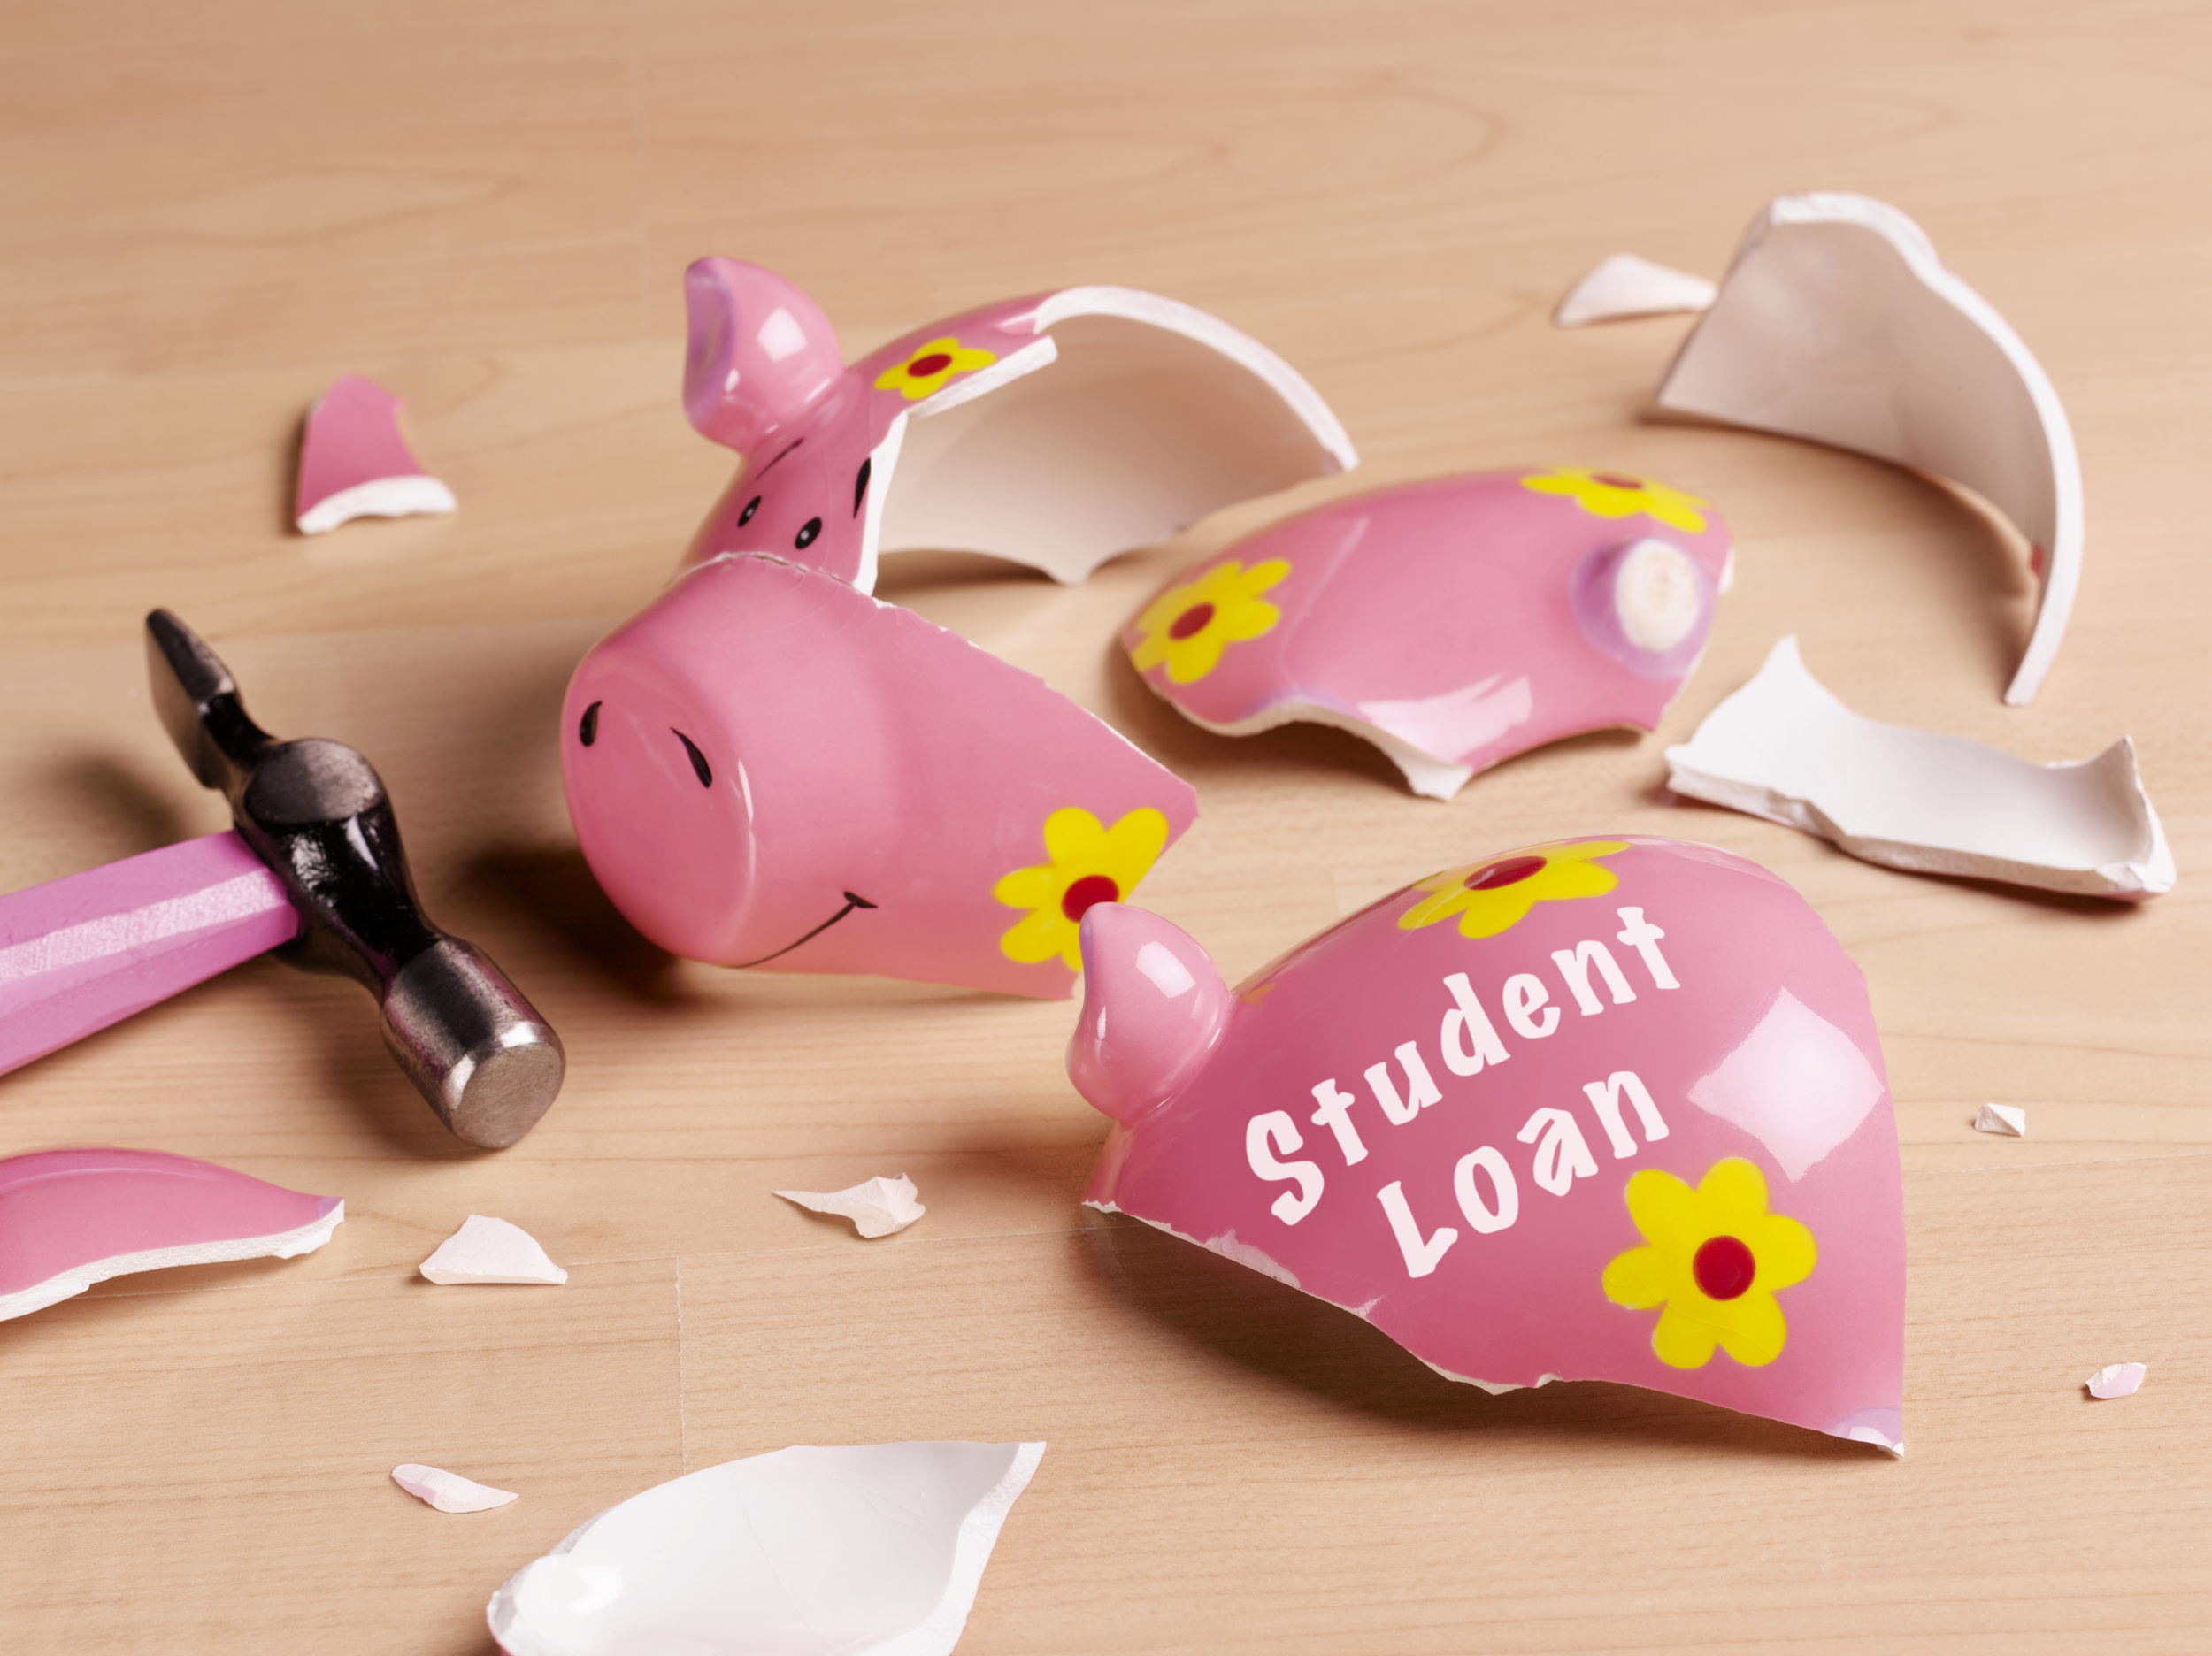 What would you do if you never had to pay your student loans again? Save the economy, new research shows